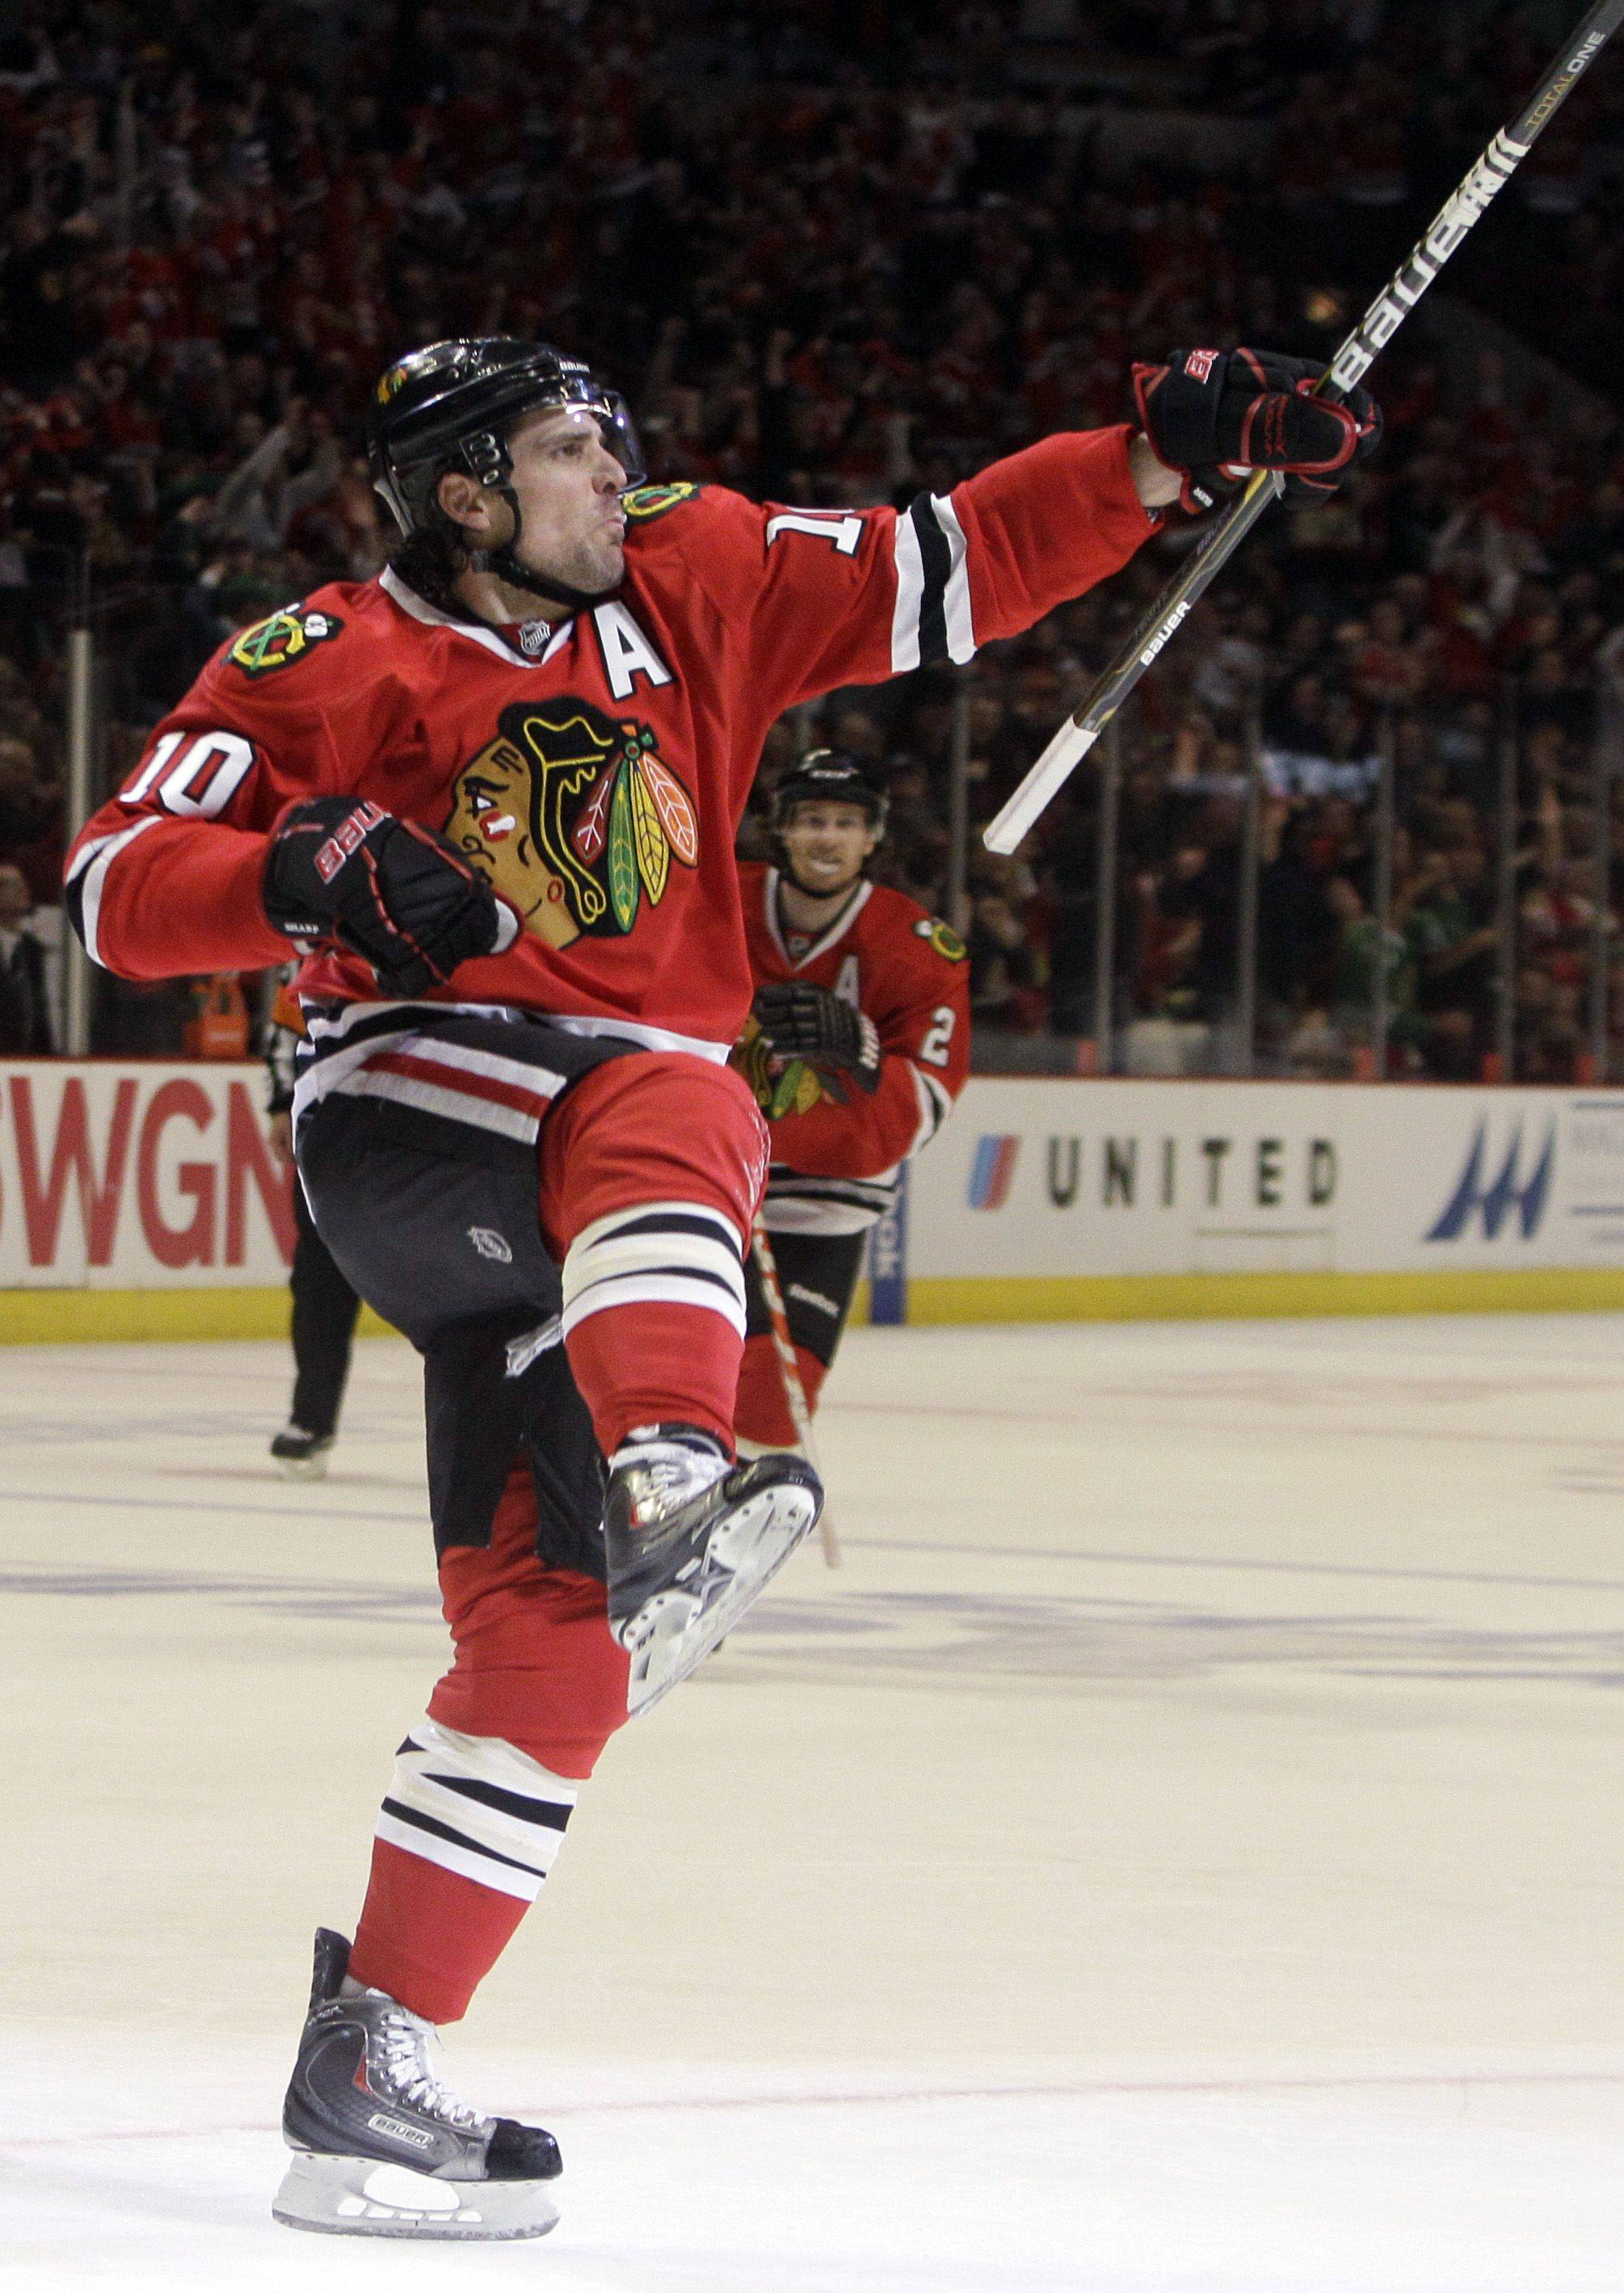 Chicago Blackhawks' Patrick Sharp celebrates after scoring his goal during the second period.